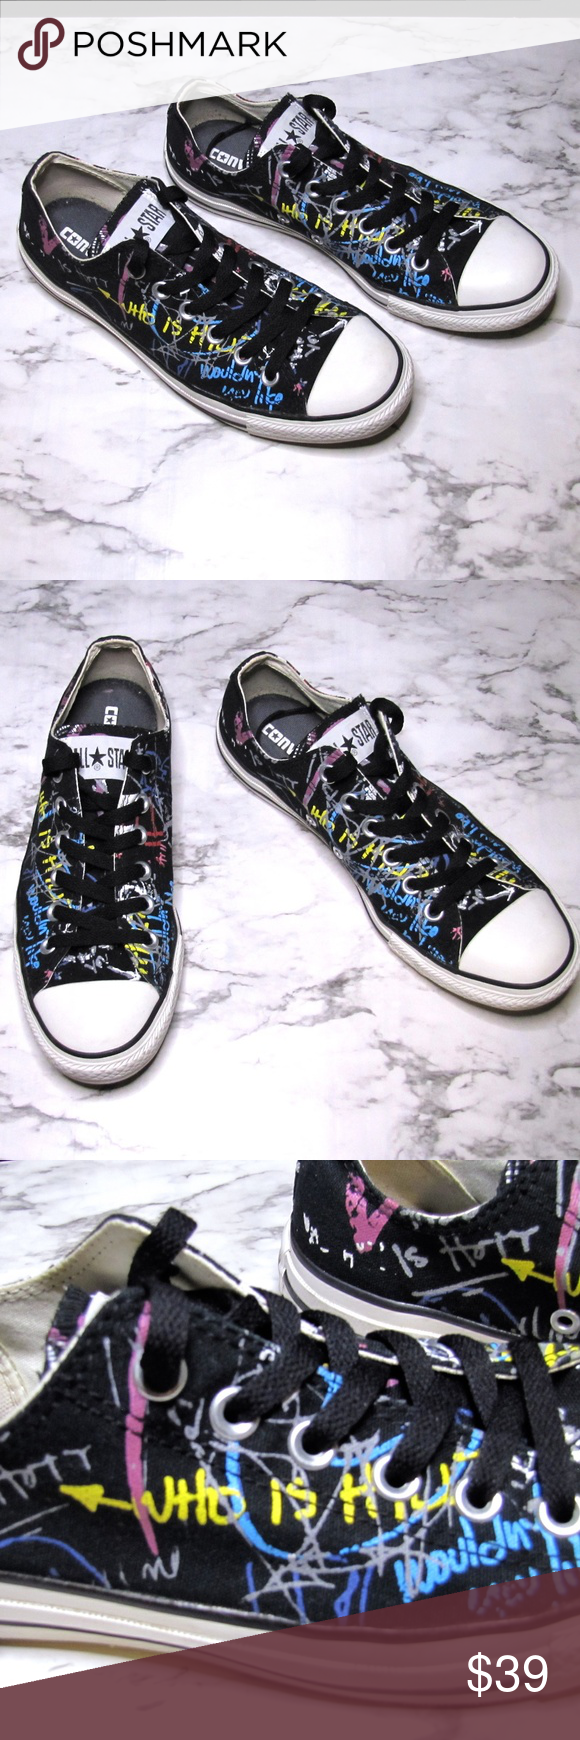 86654f89a7e Converse All Star Chucks Custom Graffiti Sneakers Converse All Star Chuck  Taylor Custom Unisex Sneakers Black